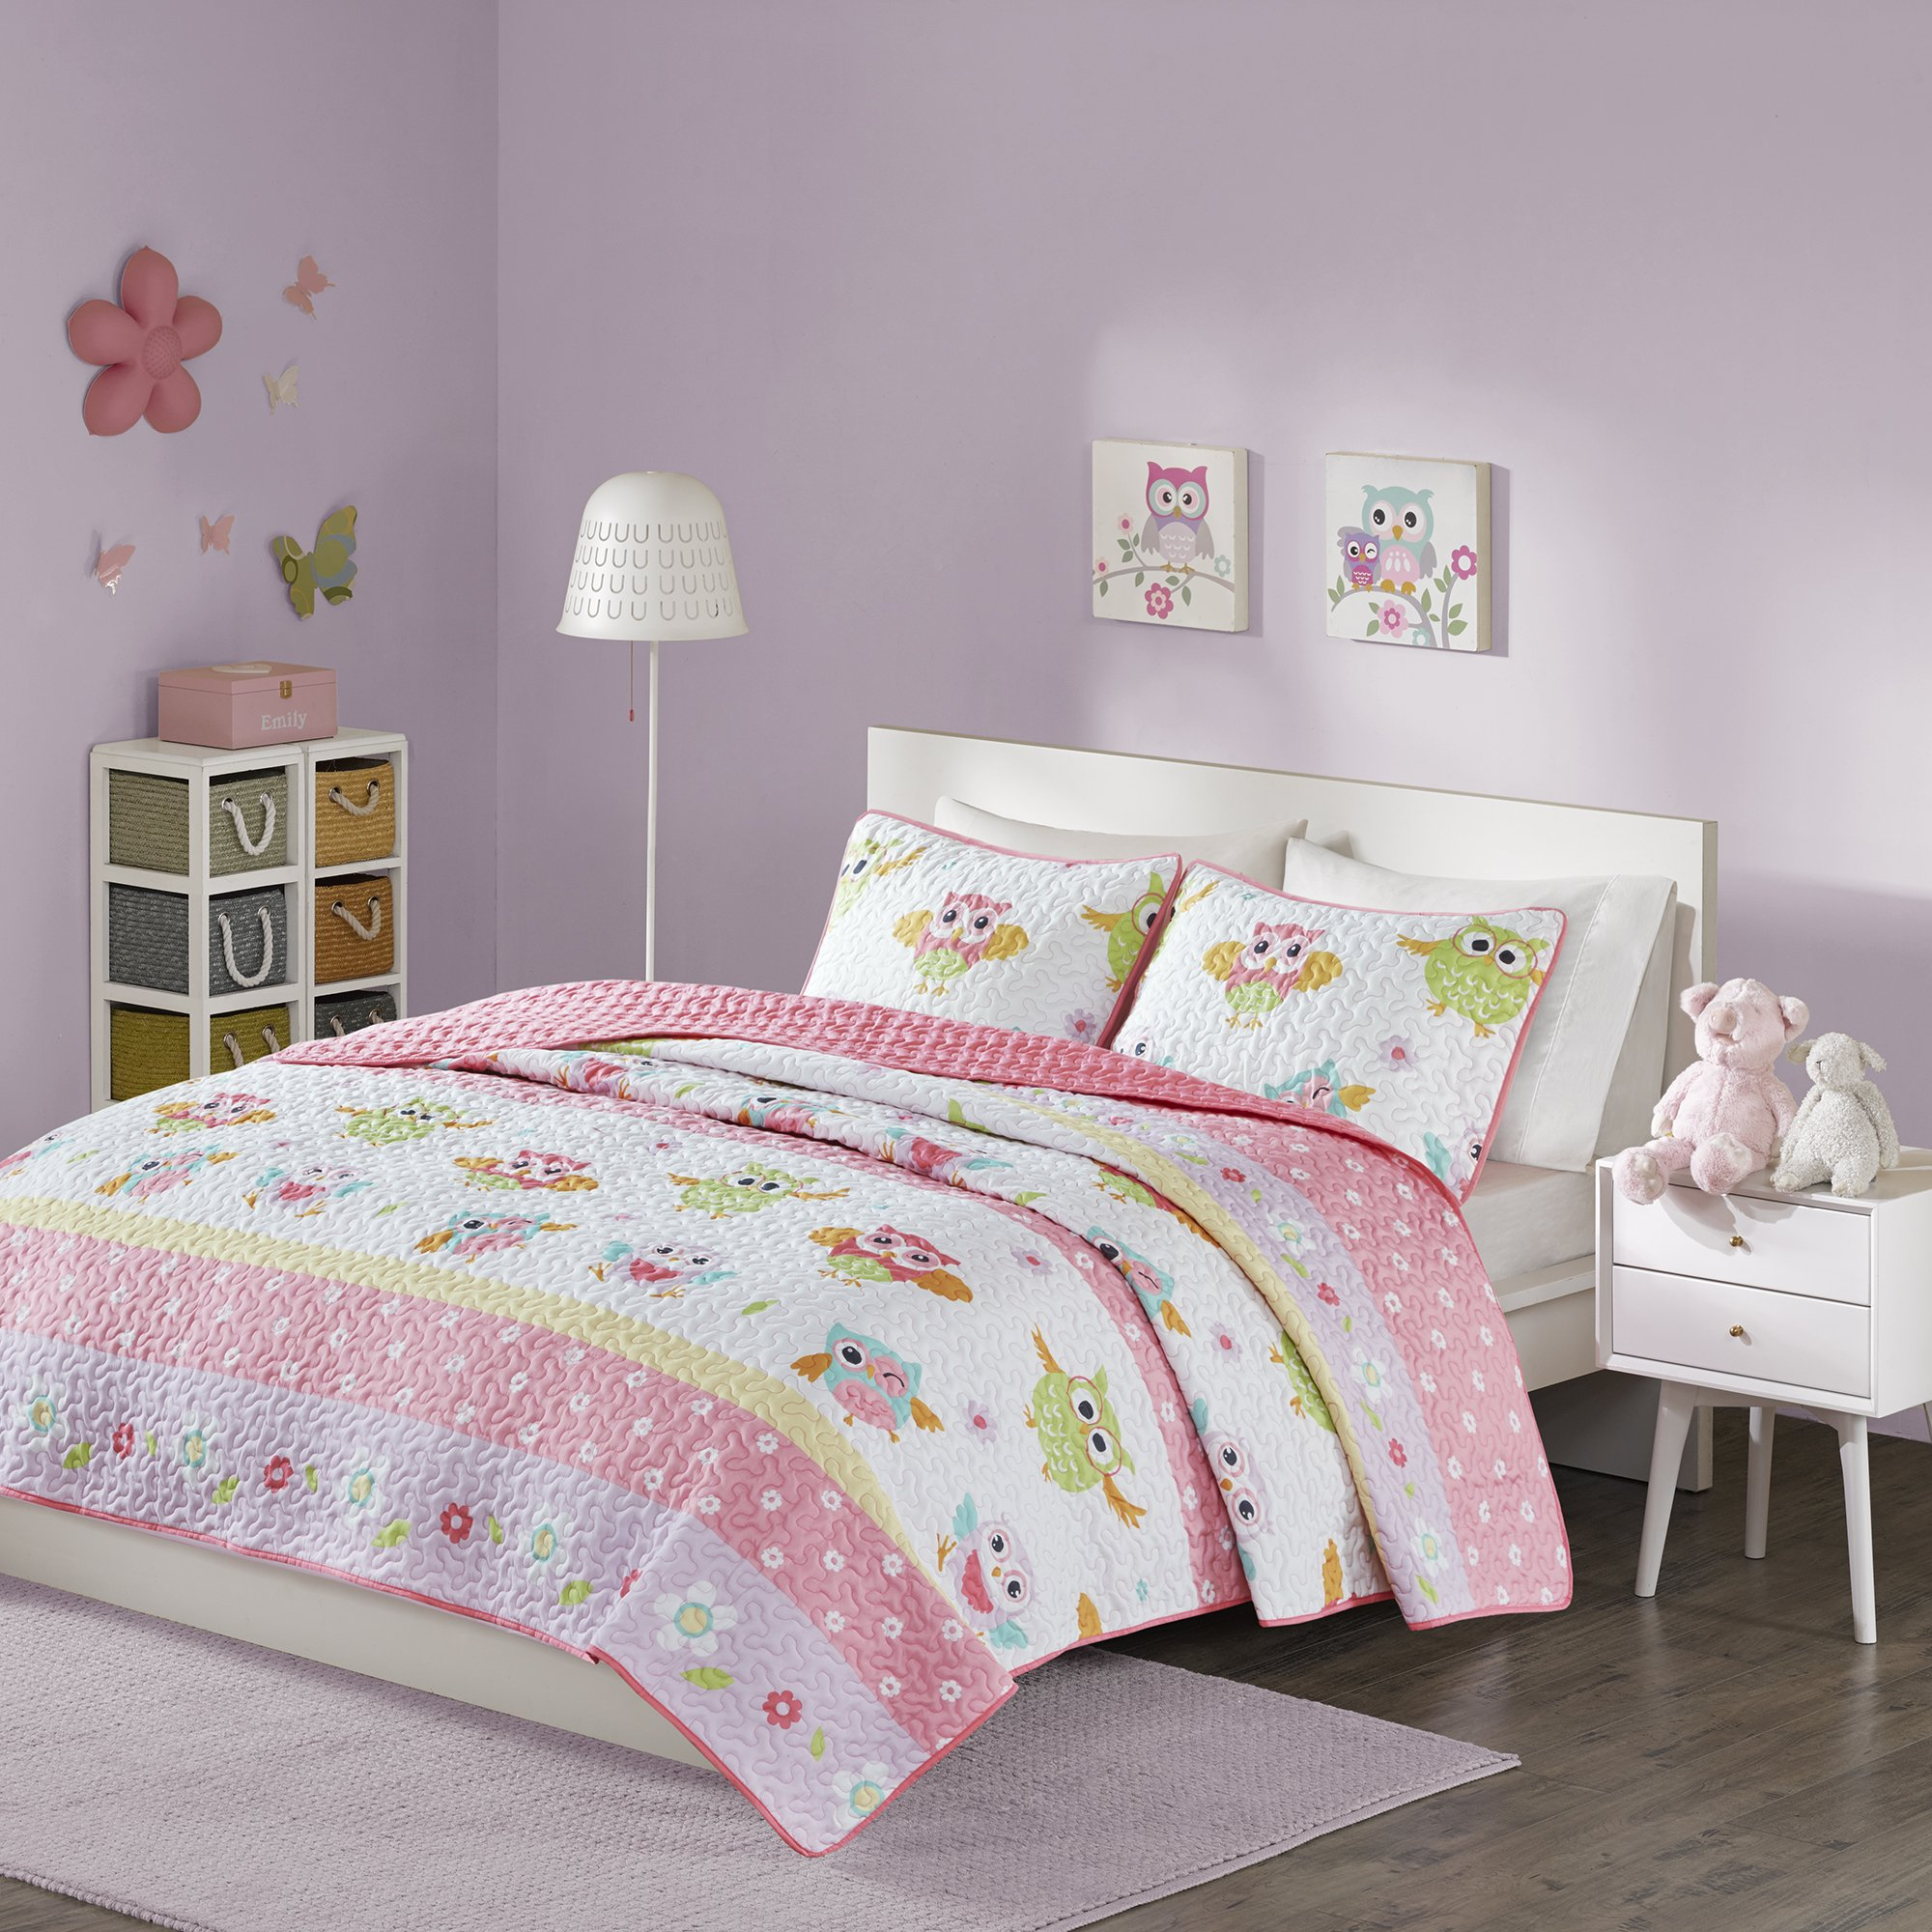 Comfort Spaces Owl Pattern Kids Bedspread Mini Quilt Set - 2 Piece - Pink White - Teens/Girls - Owl Print - Twin Size, includes 1 Quilt, 1 Sham